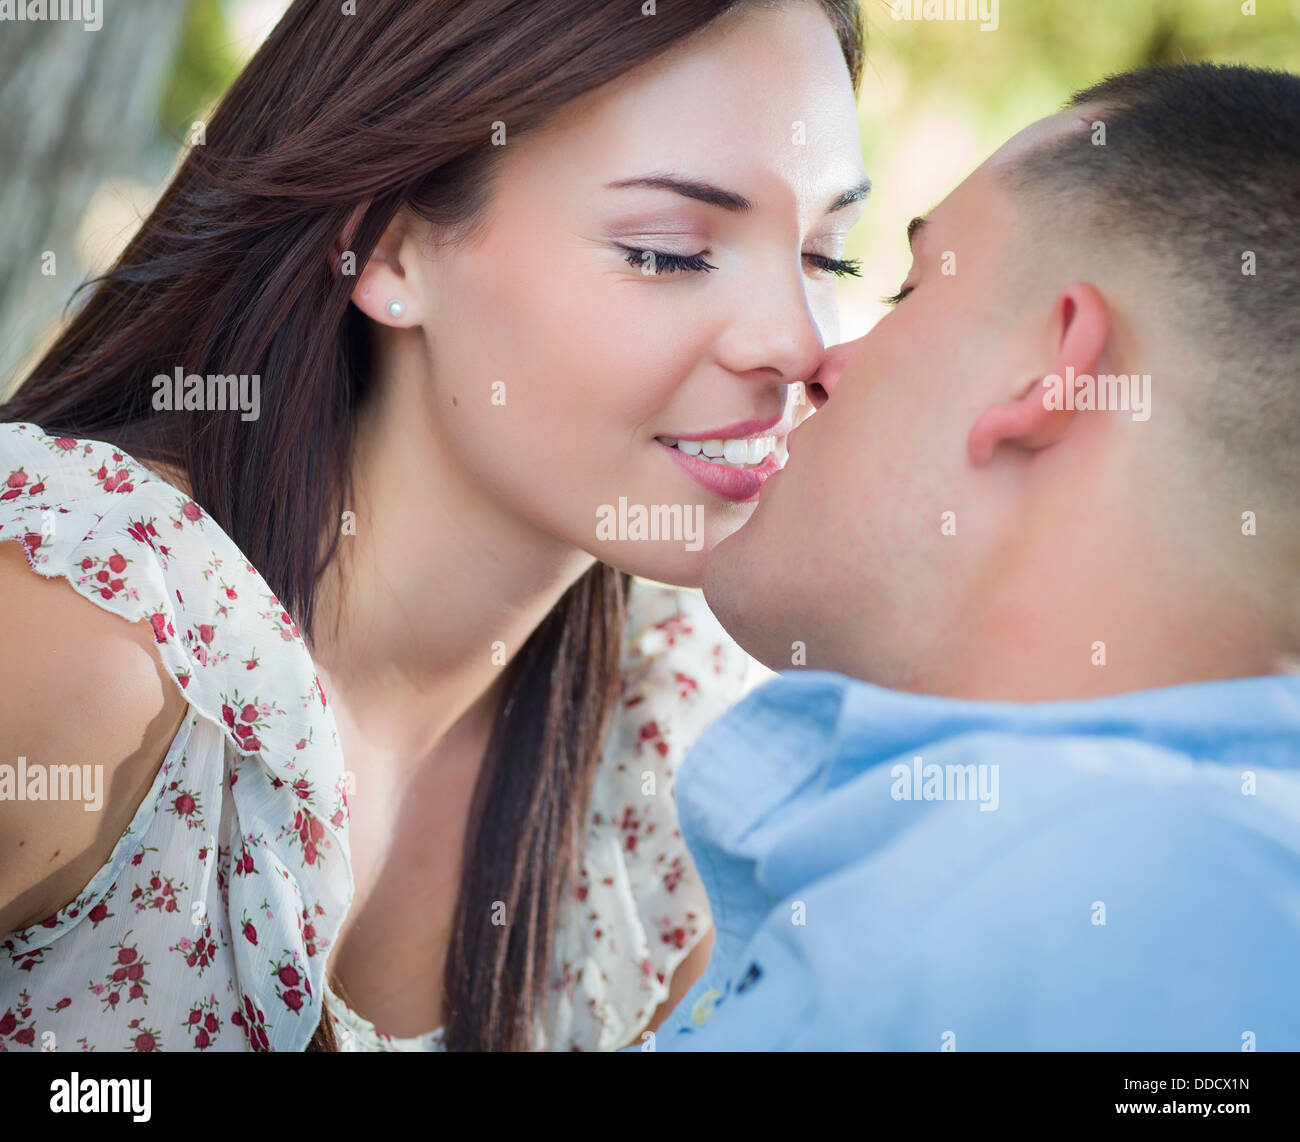 Military Romance Stock Photos & Military Romance Stock Images - Alamy